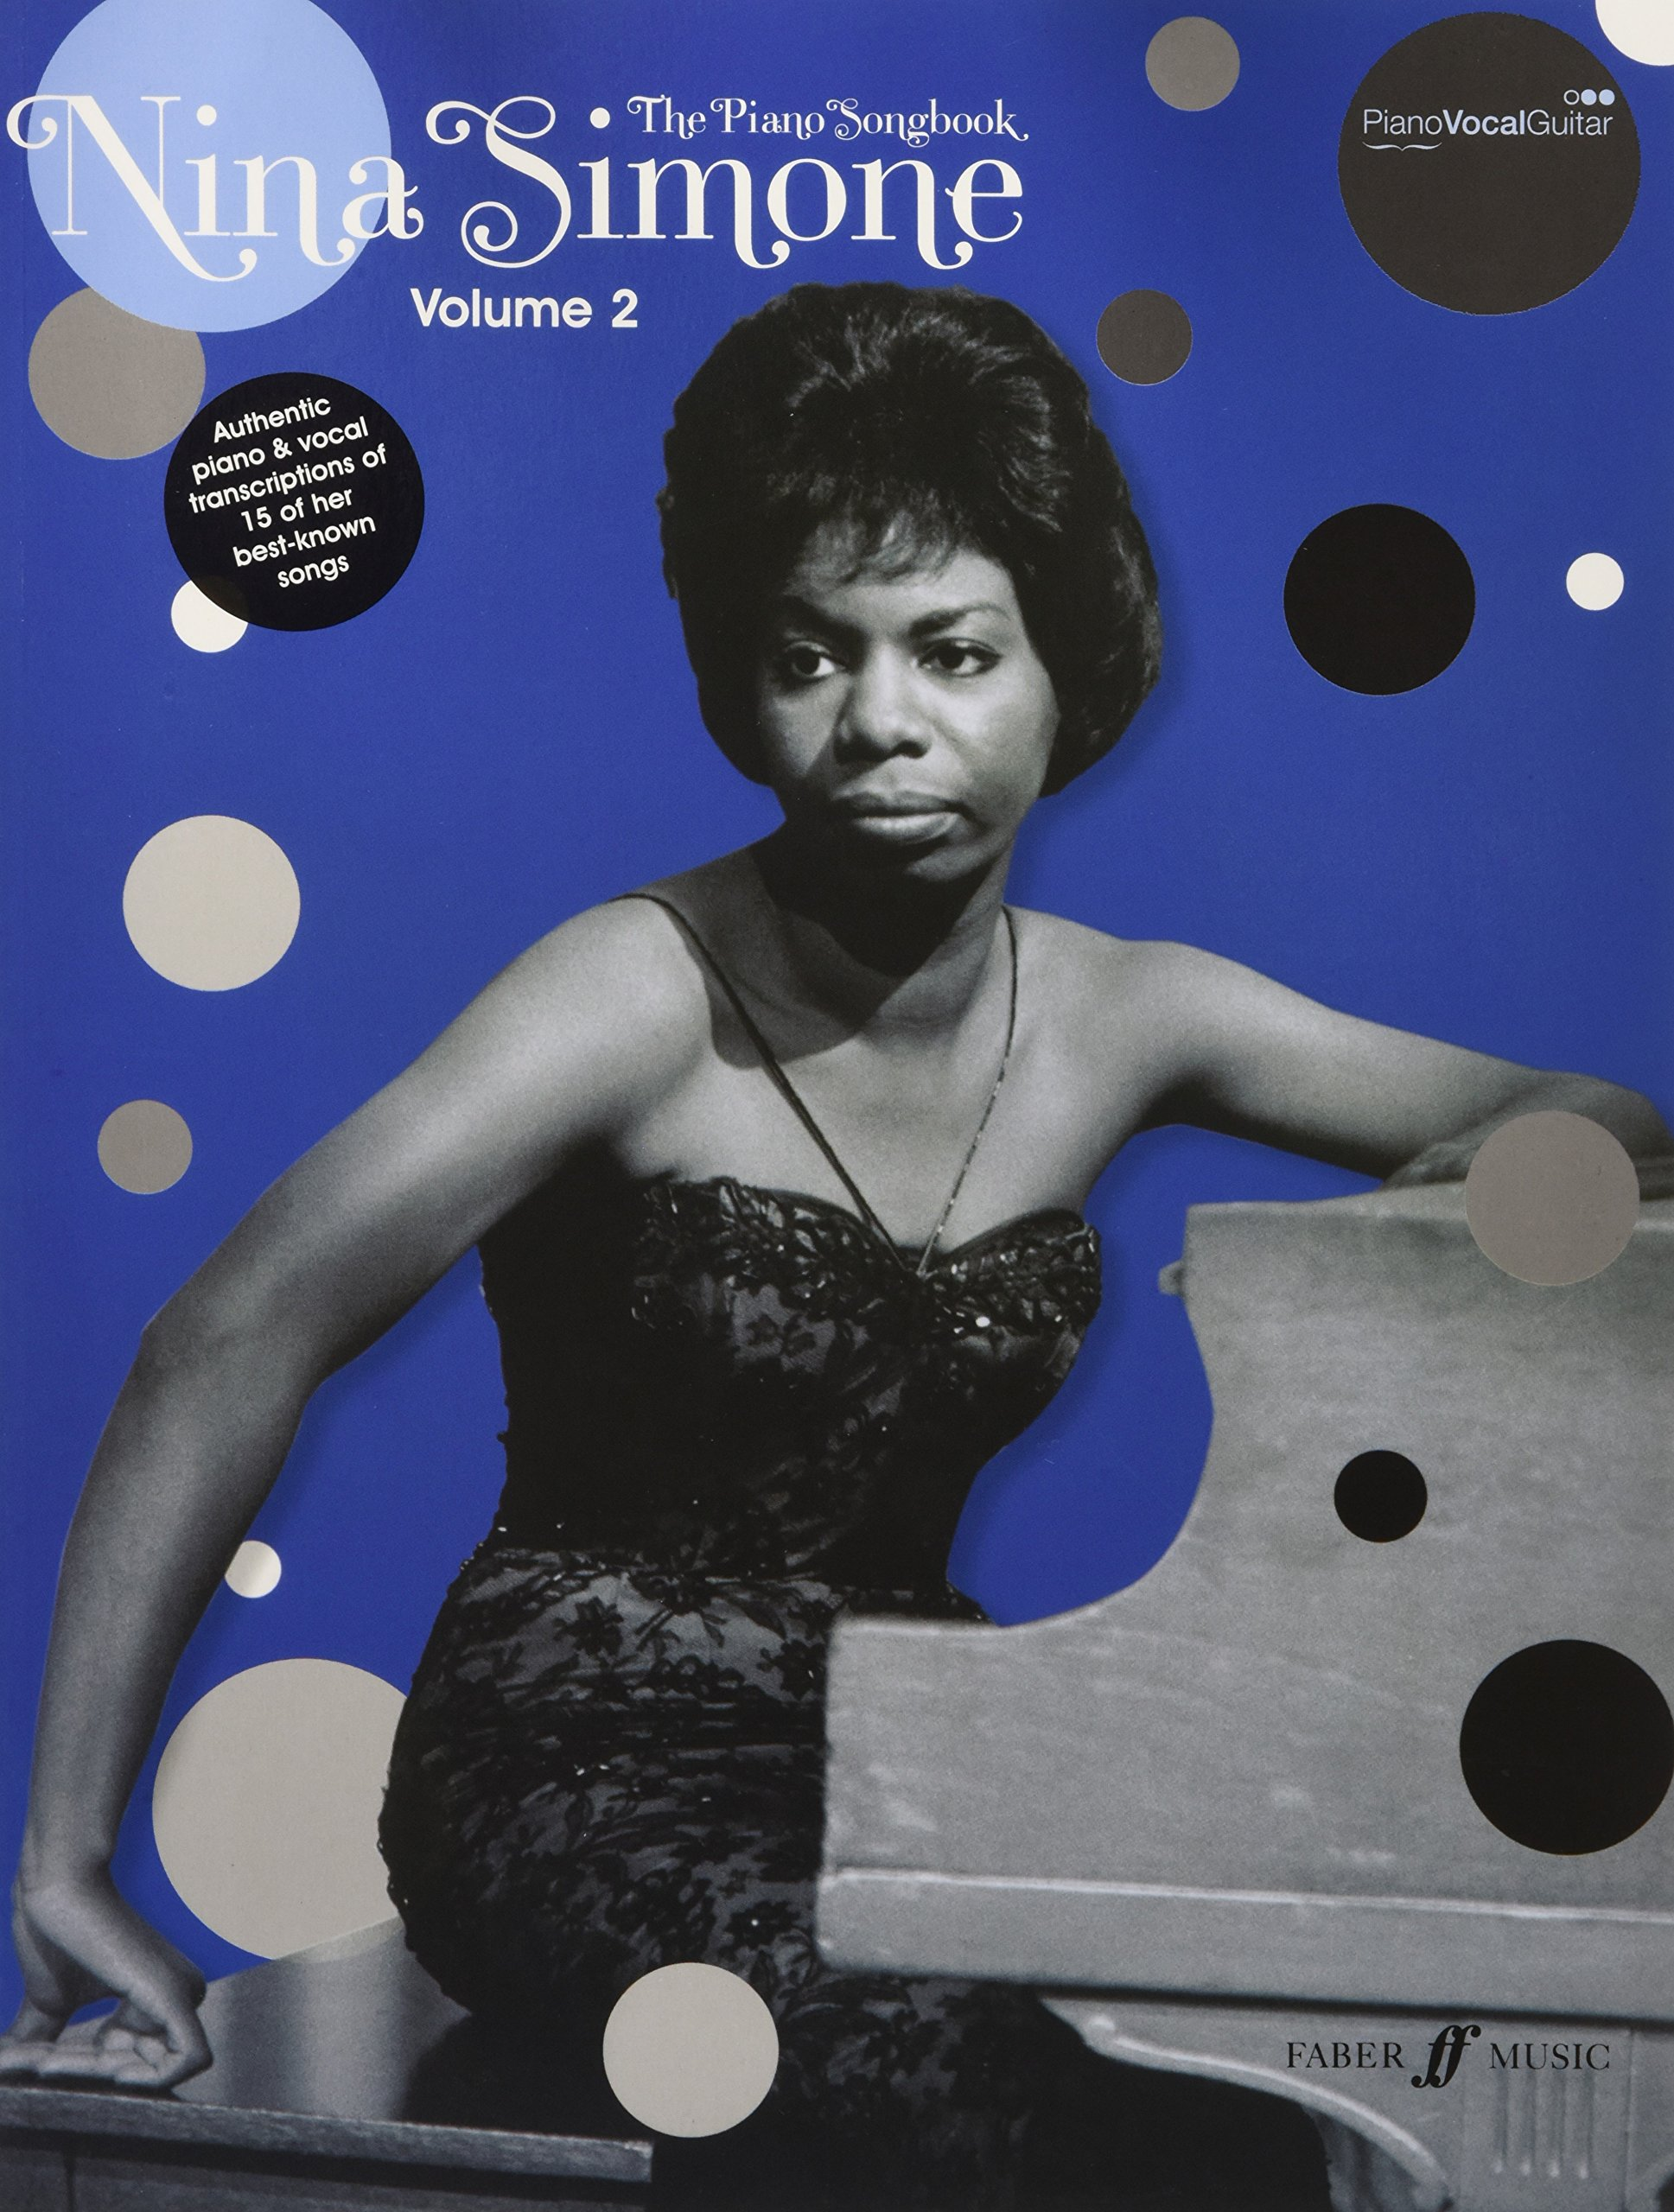 The Nina Simone Piano Songbook Volume 2 (Piano, Voice and